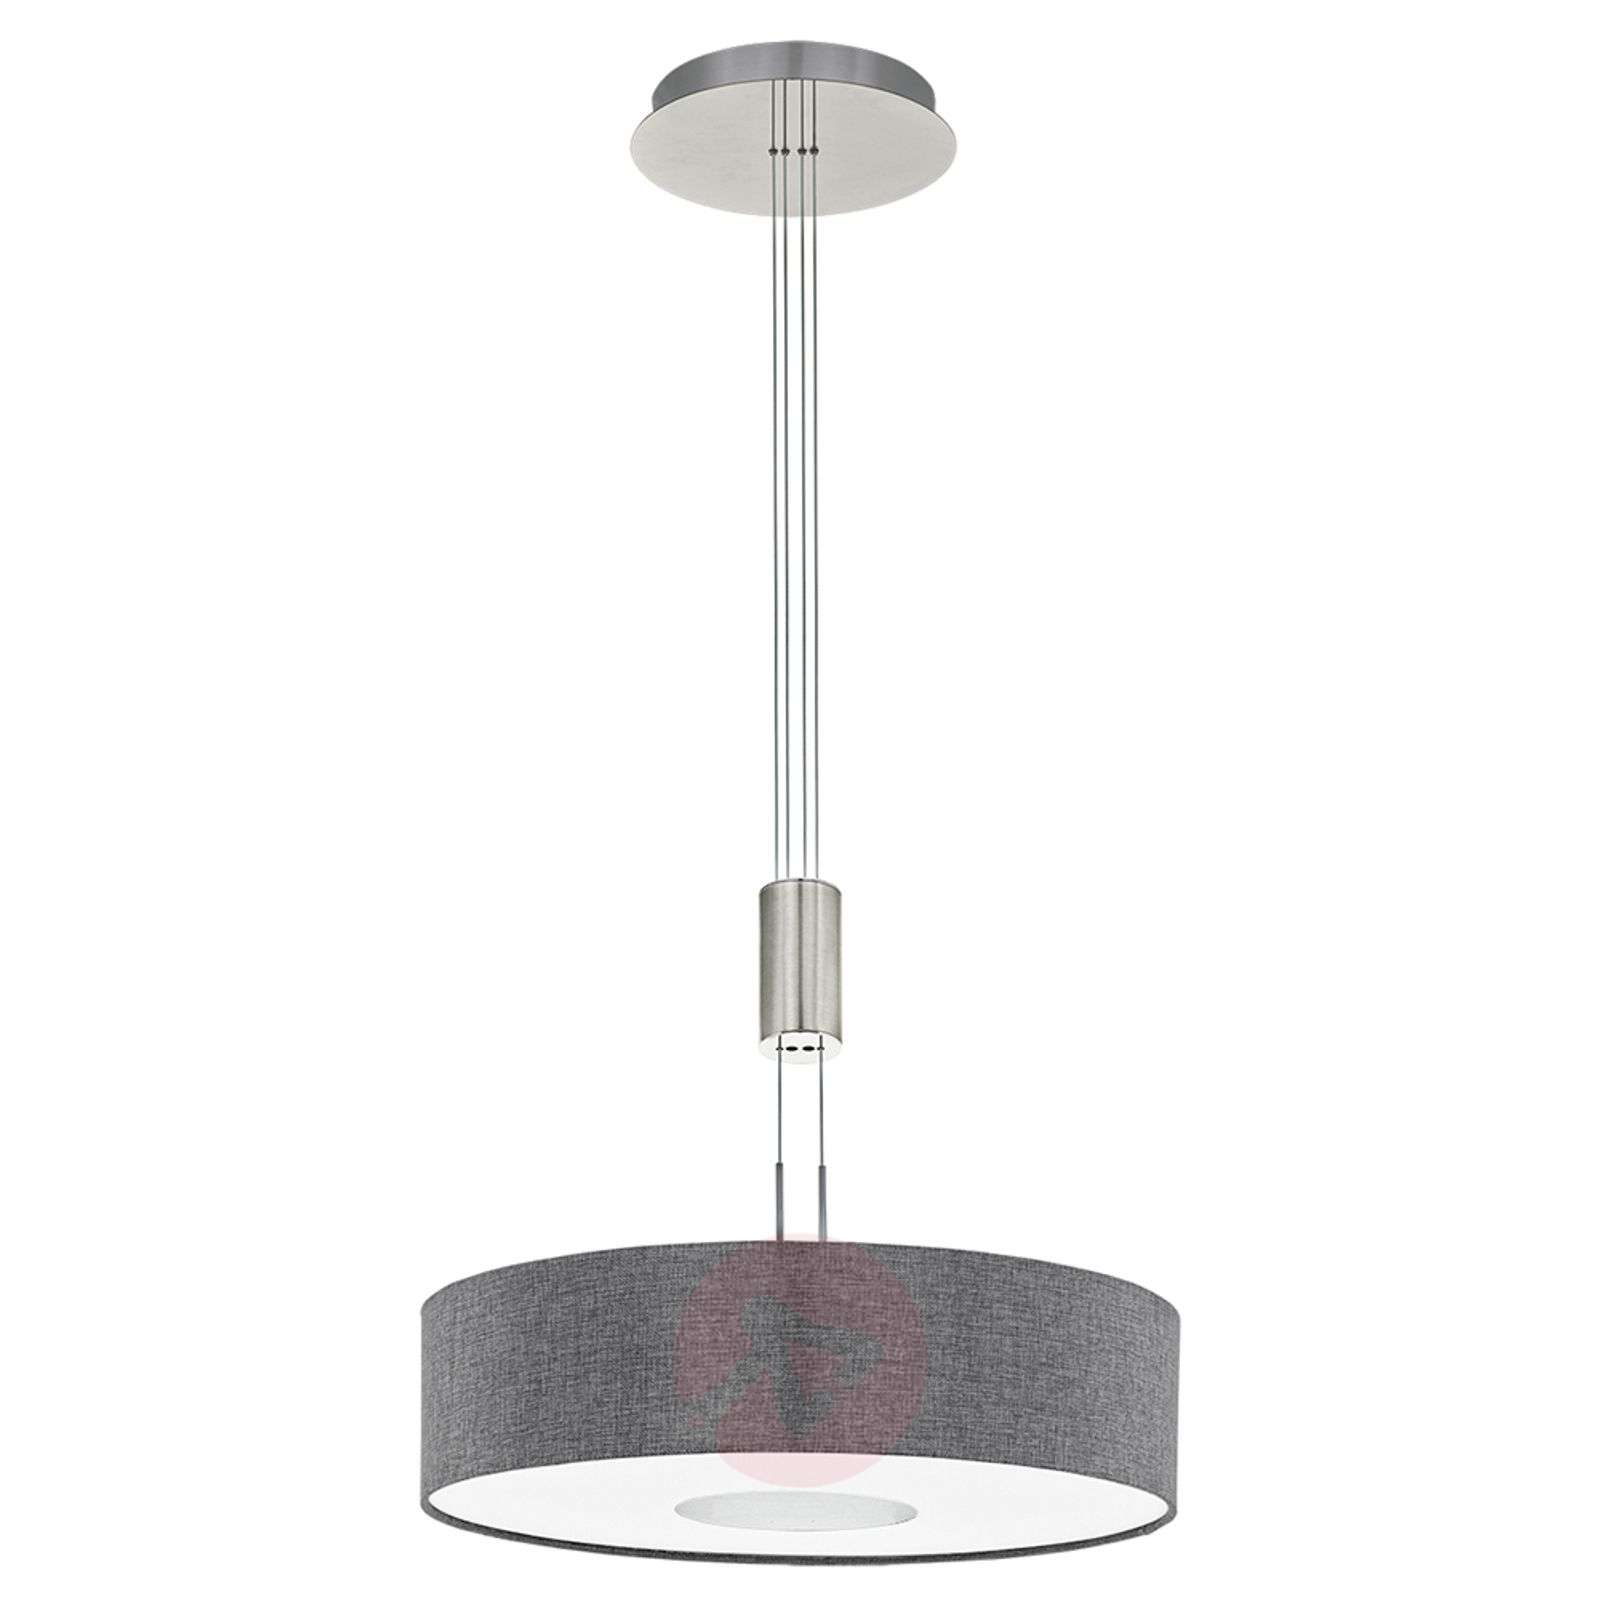 Height adjustable fabric led pendant light romano